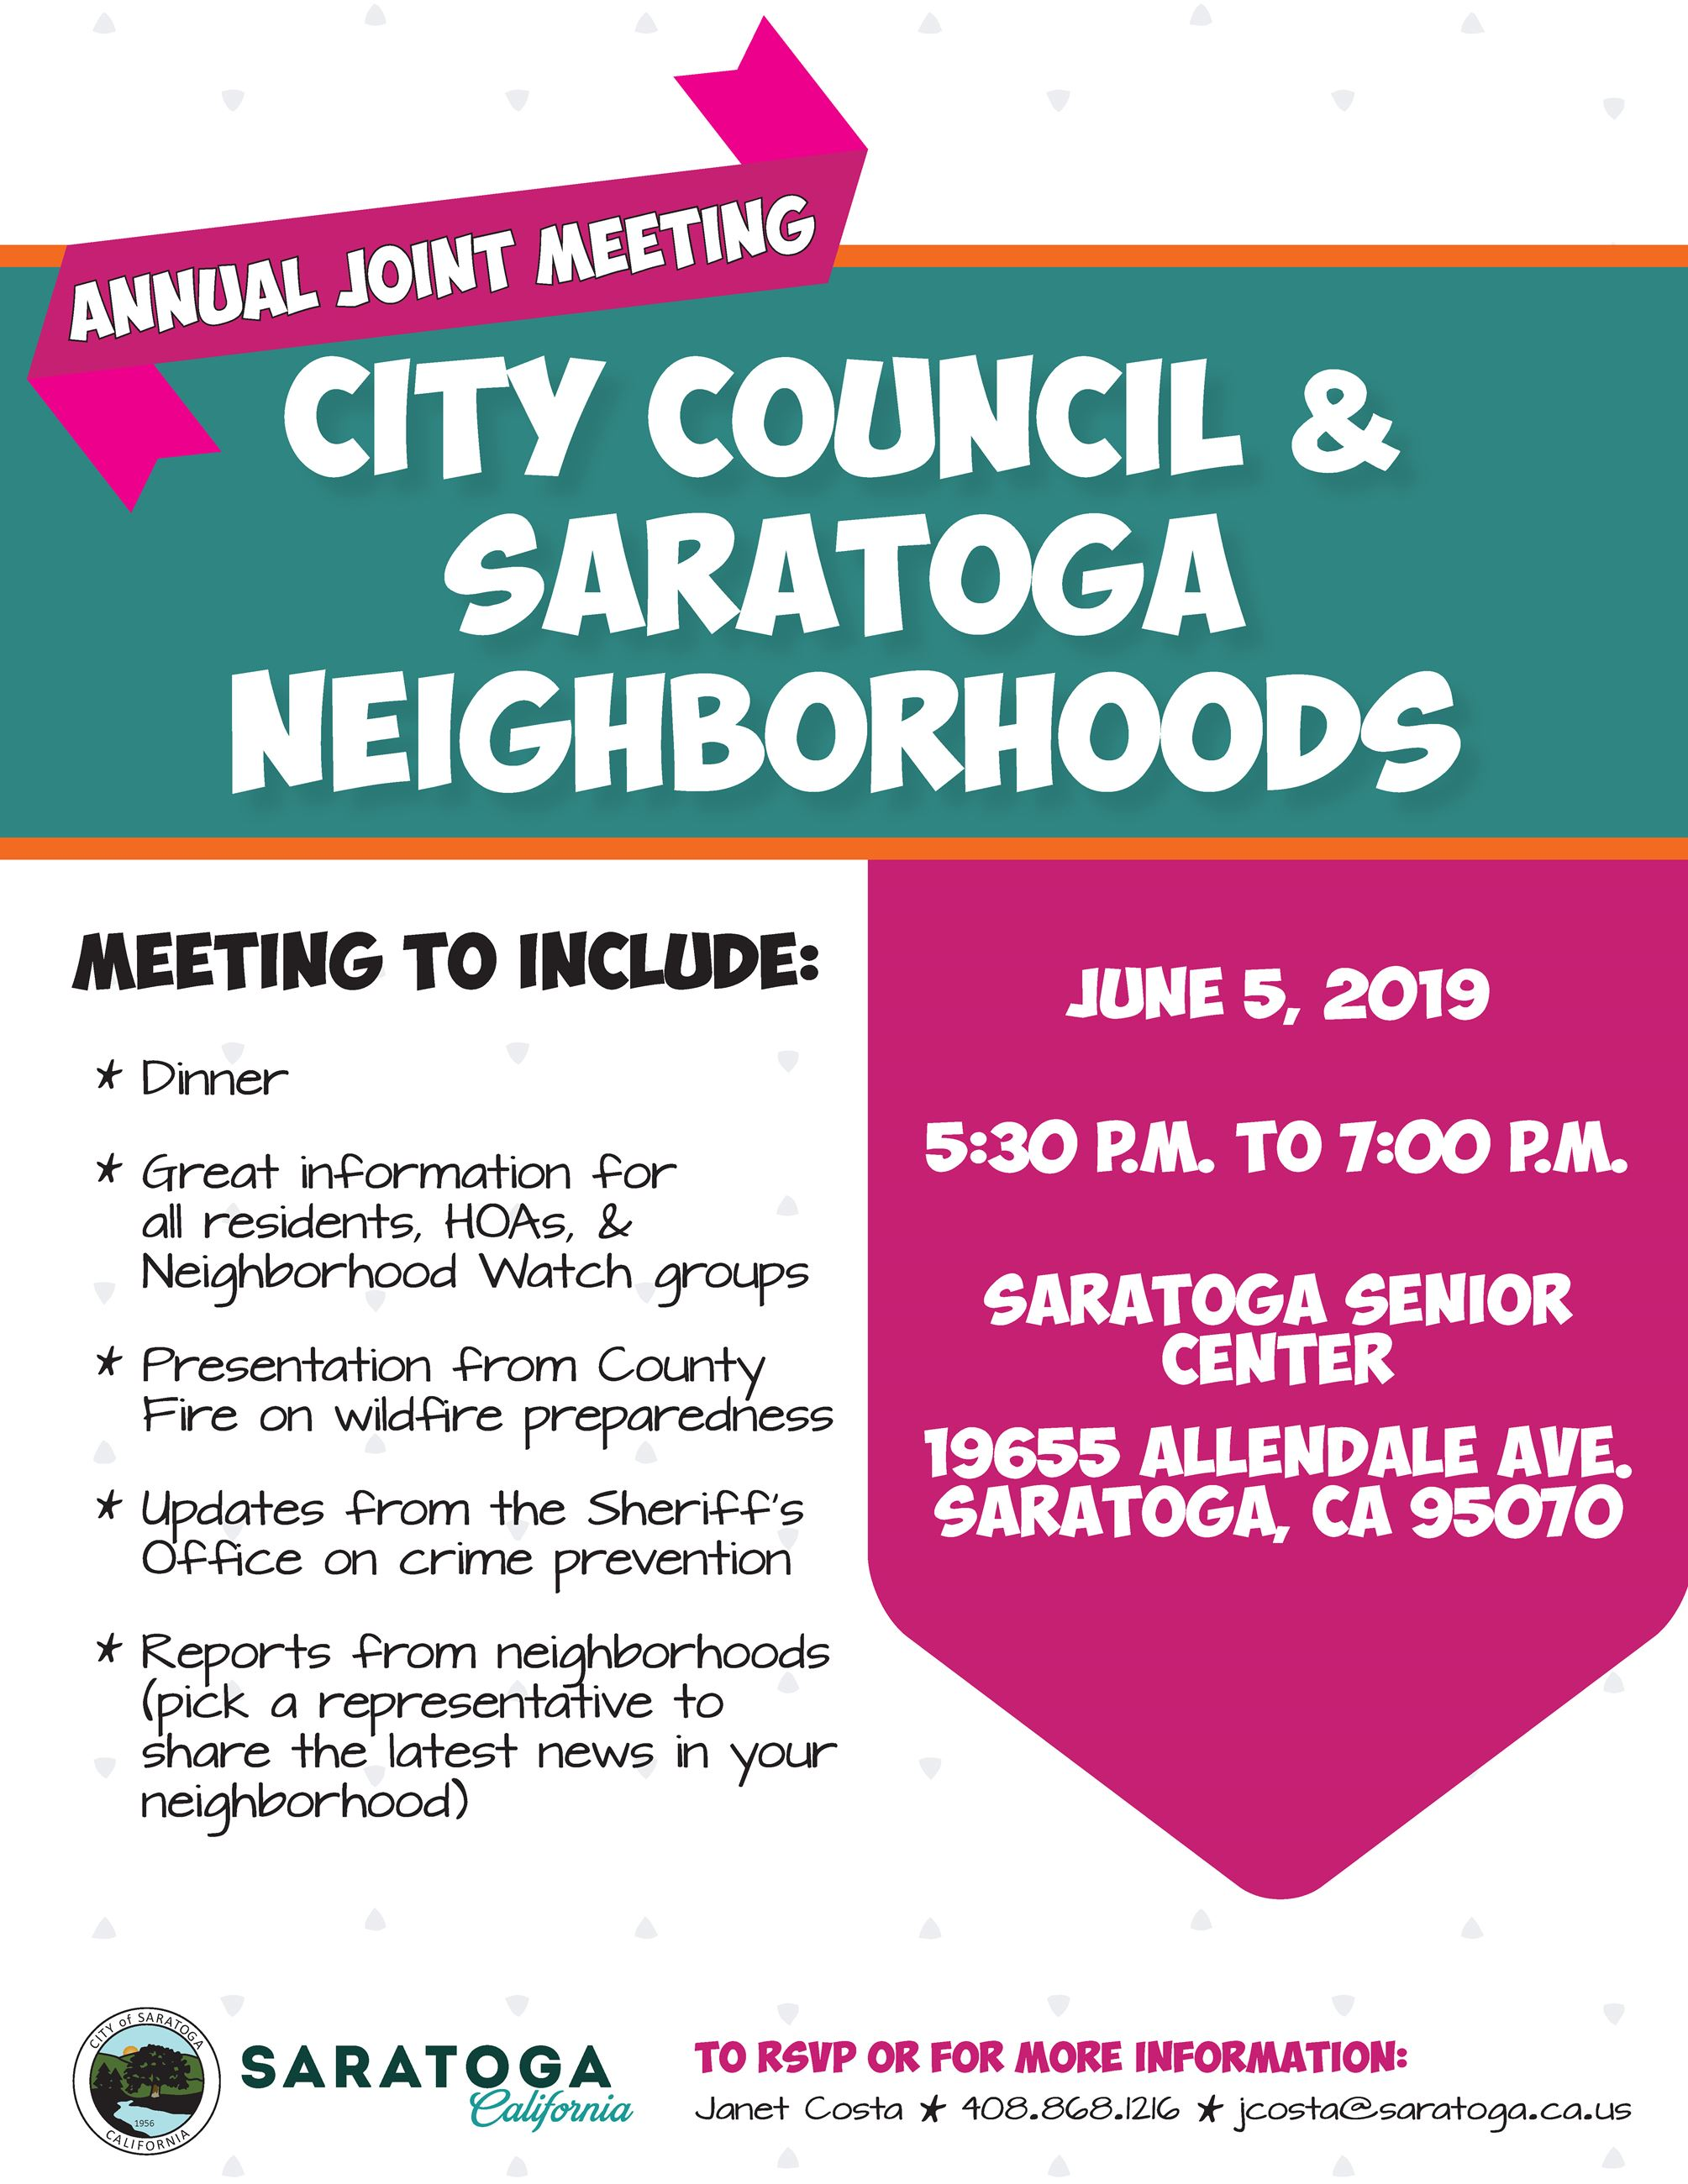 2019 Neighborhoods Joint Meeting Flyer